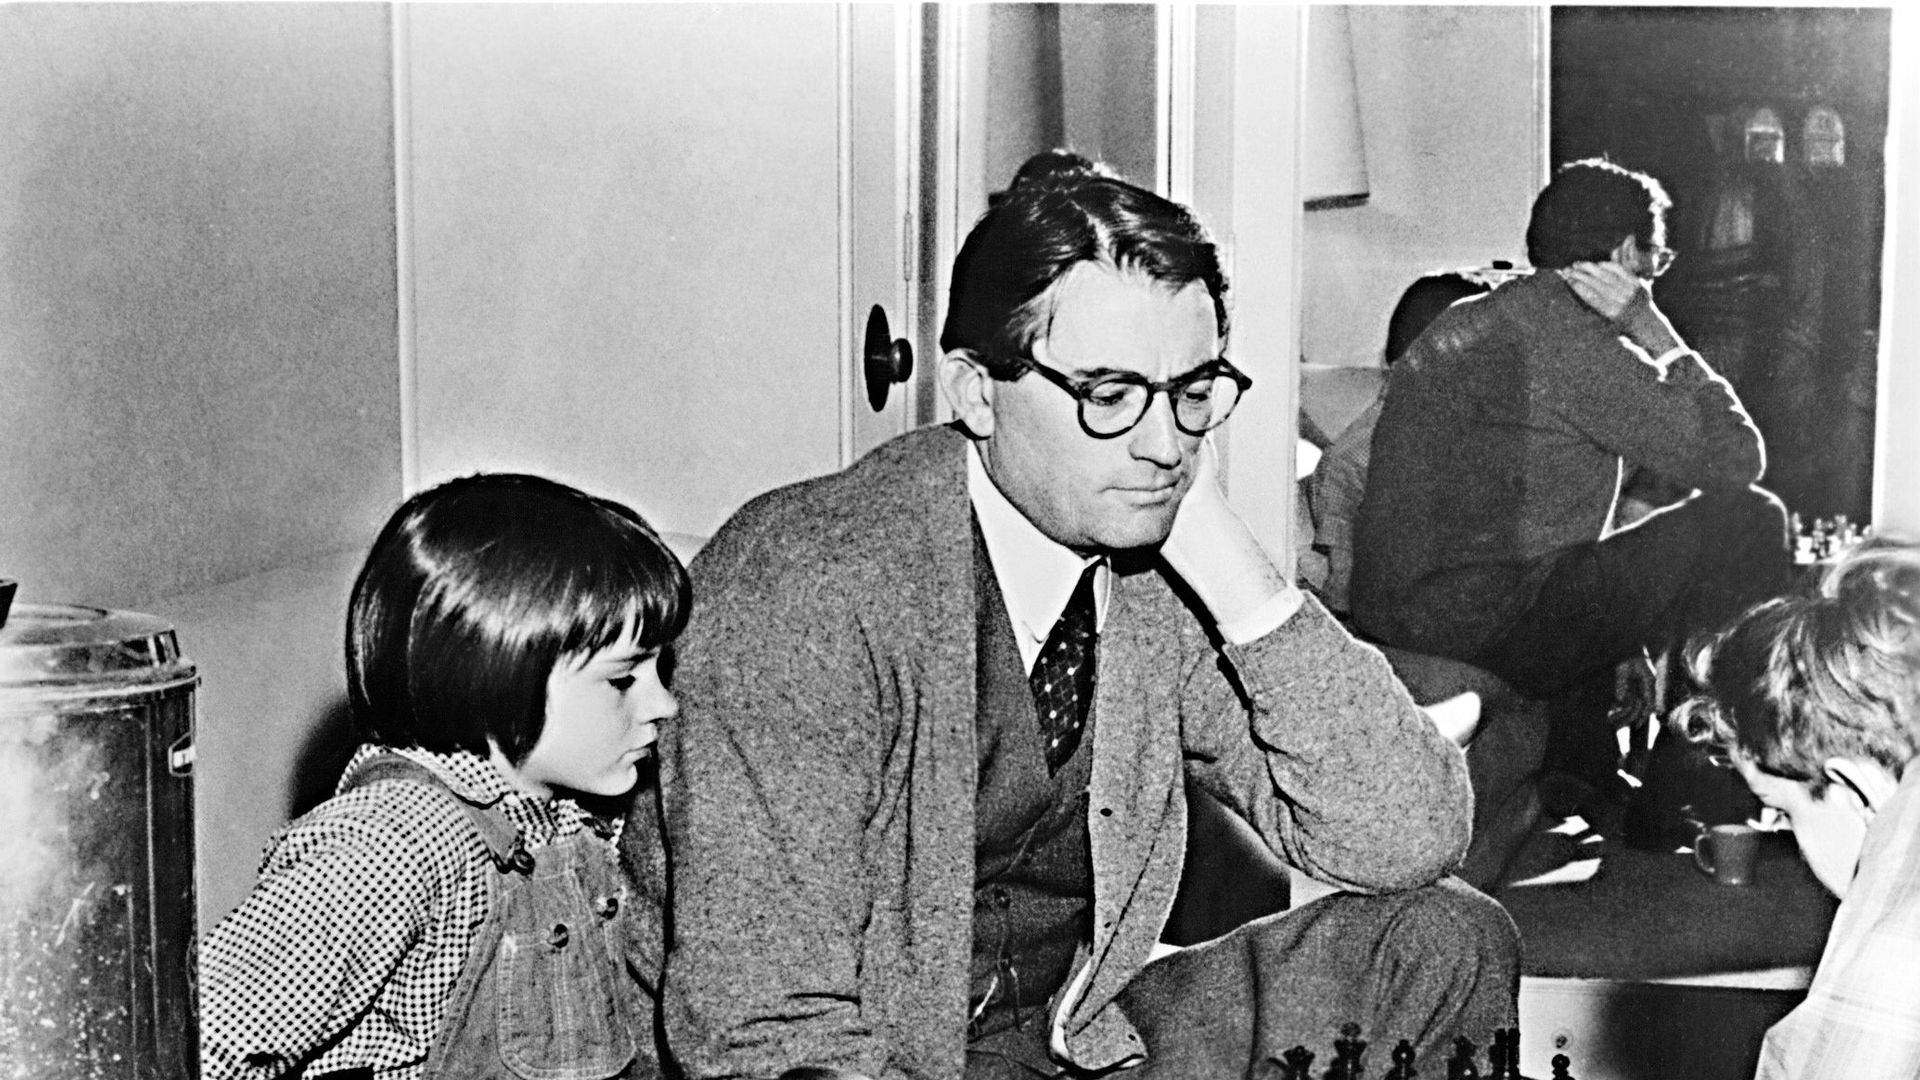 """Gregory Peck as Atticus Finch in """"To Kill a Mockingbird."""""""